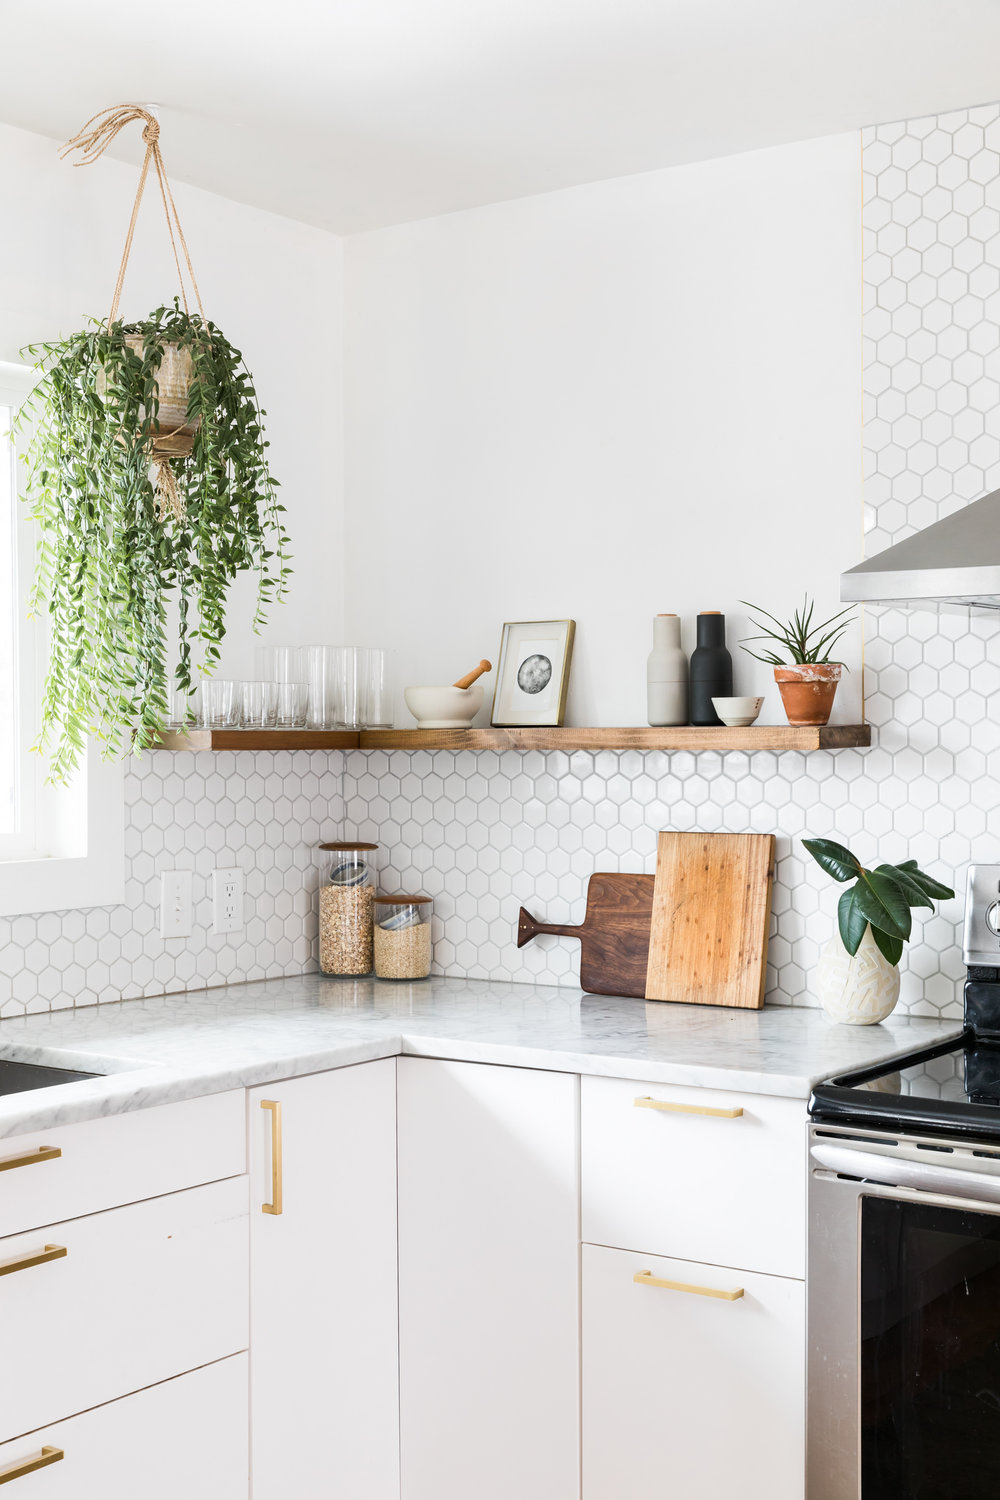 Minimalist kitchen with hanging plant, wooden floating shelf, and marble countertops.